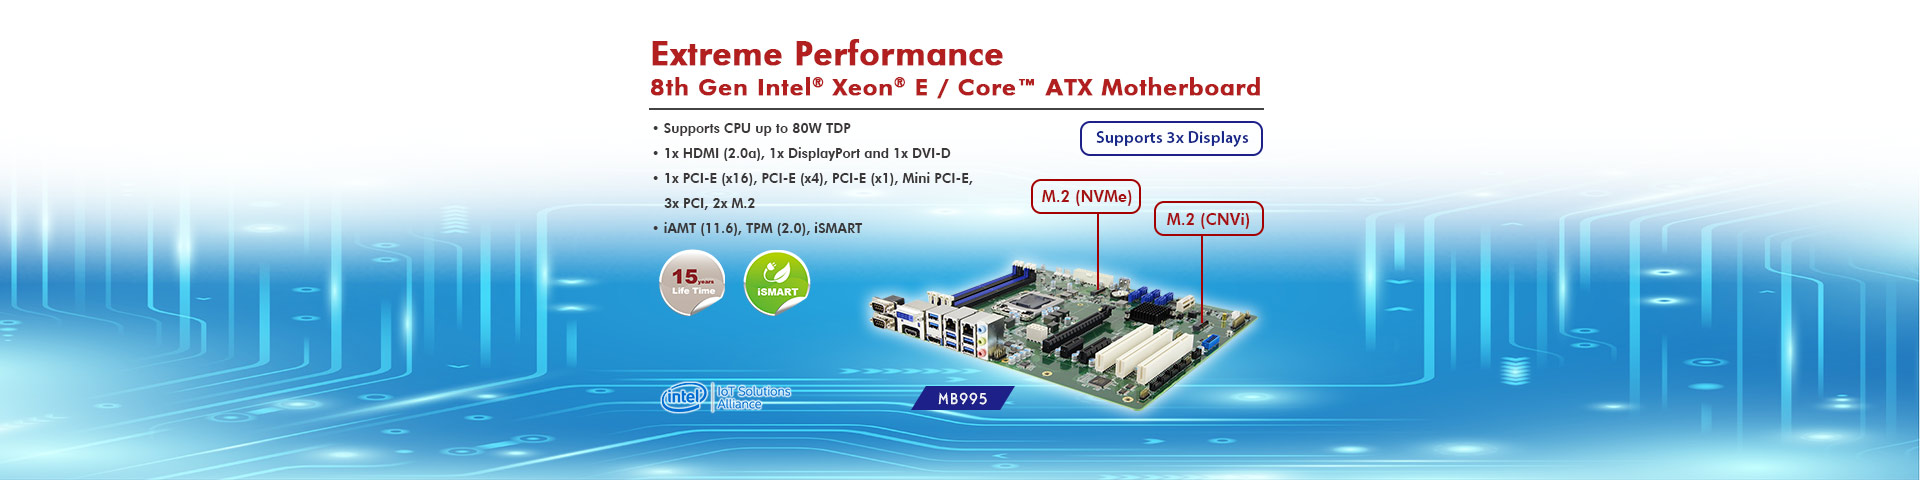 8th Gen Intel® Xeon® E / Core™ based MB995 ATX Motherboard with M.2 NVMe and CNVi Functions